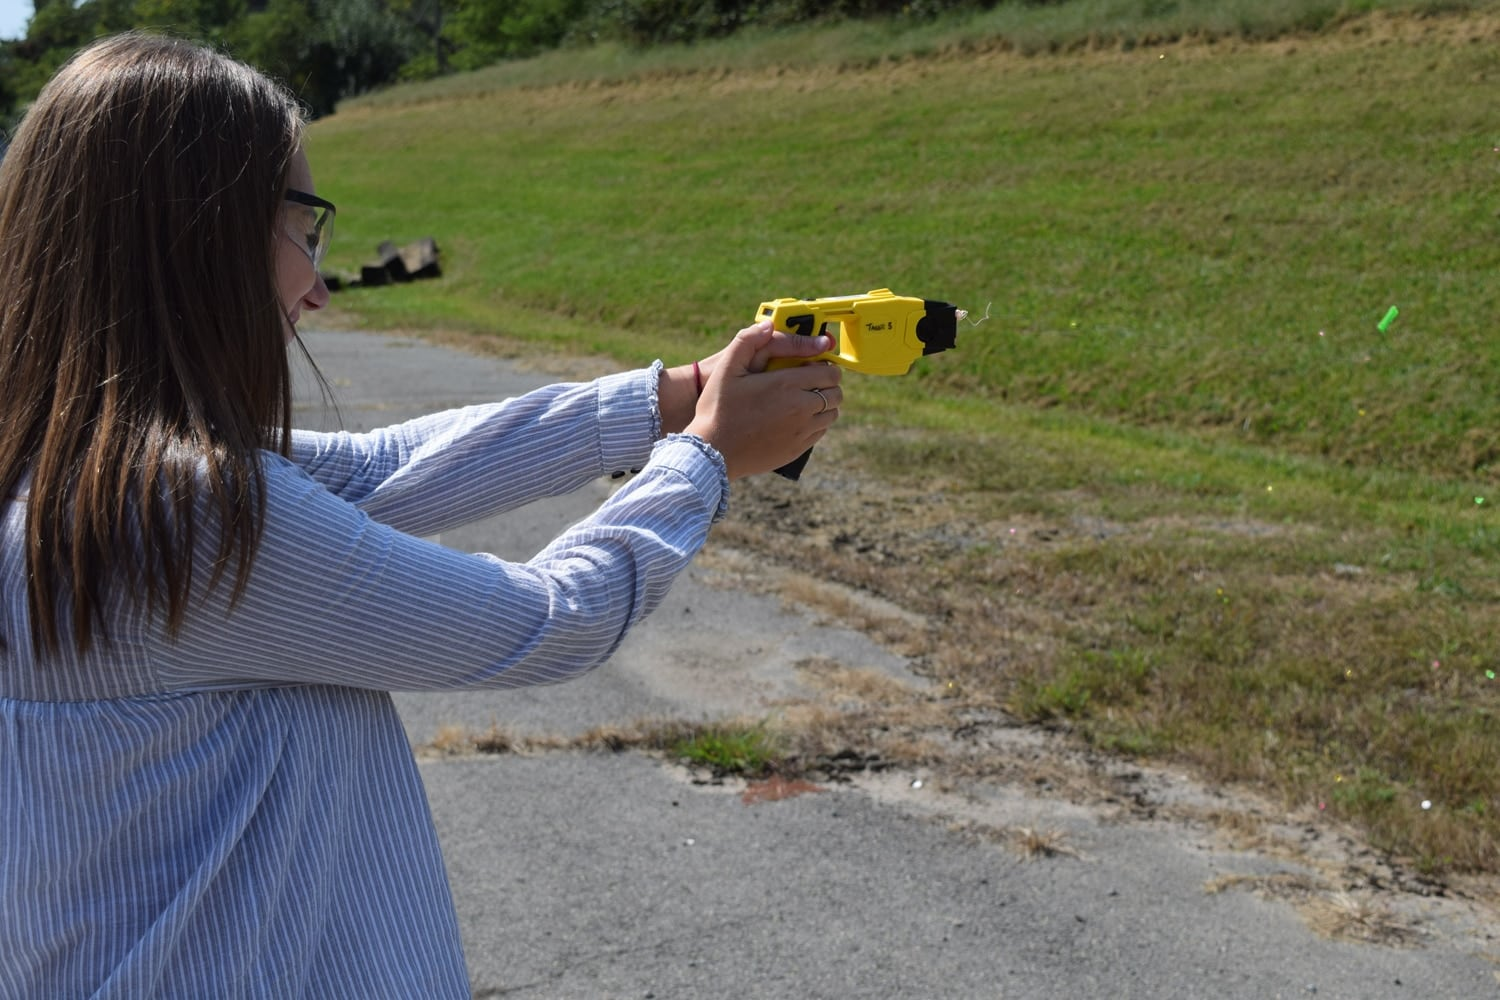 The ATF SRT team also has Tasers as part of their less lethal line. (Photo: Daniel Terrill/Guns.com)